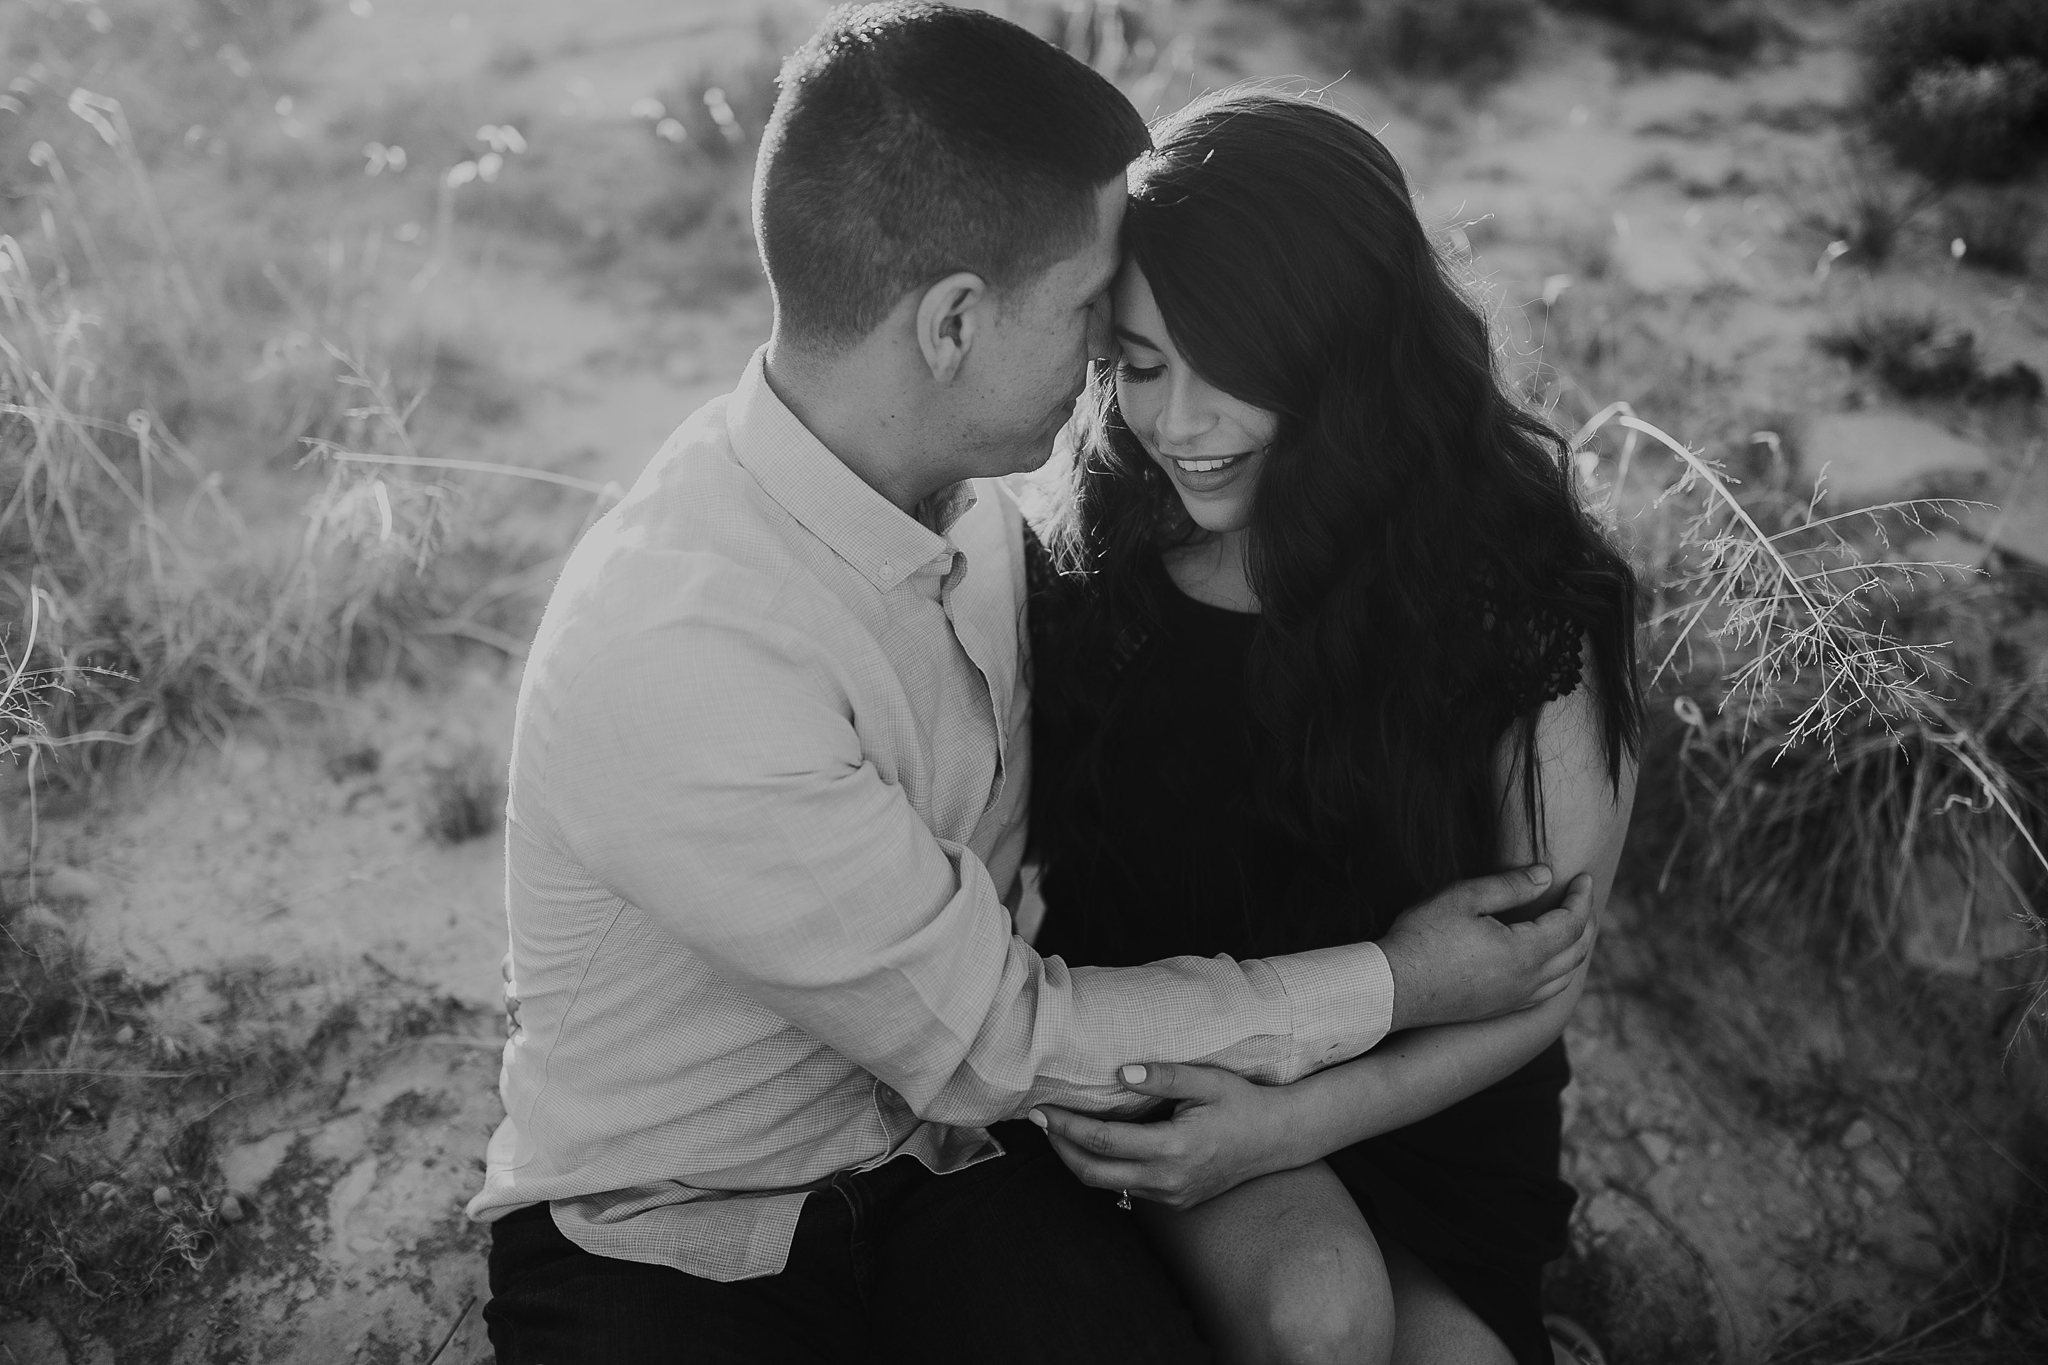 Alicia+lucia+photography+-+albuquerque+wedding+photographer+-+santa+fe+wedding+photography+-+new+mexico+wedding+photographer+-+new+mexico+wedding+-+new+mexico+engagement+-+white+mesa+engagement+-+desert+engagement_0022.jpg